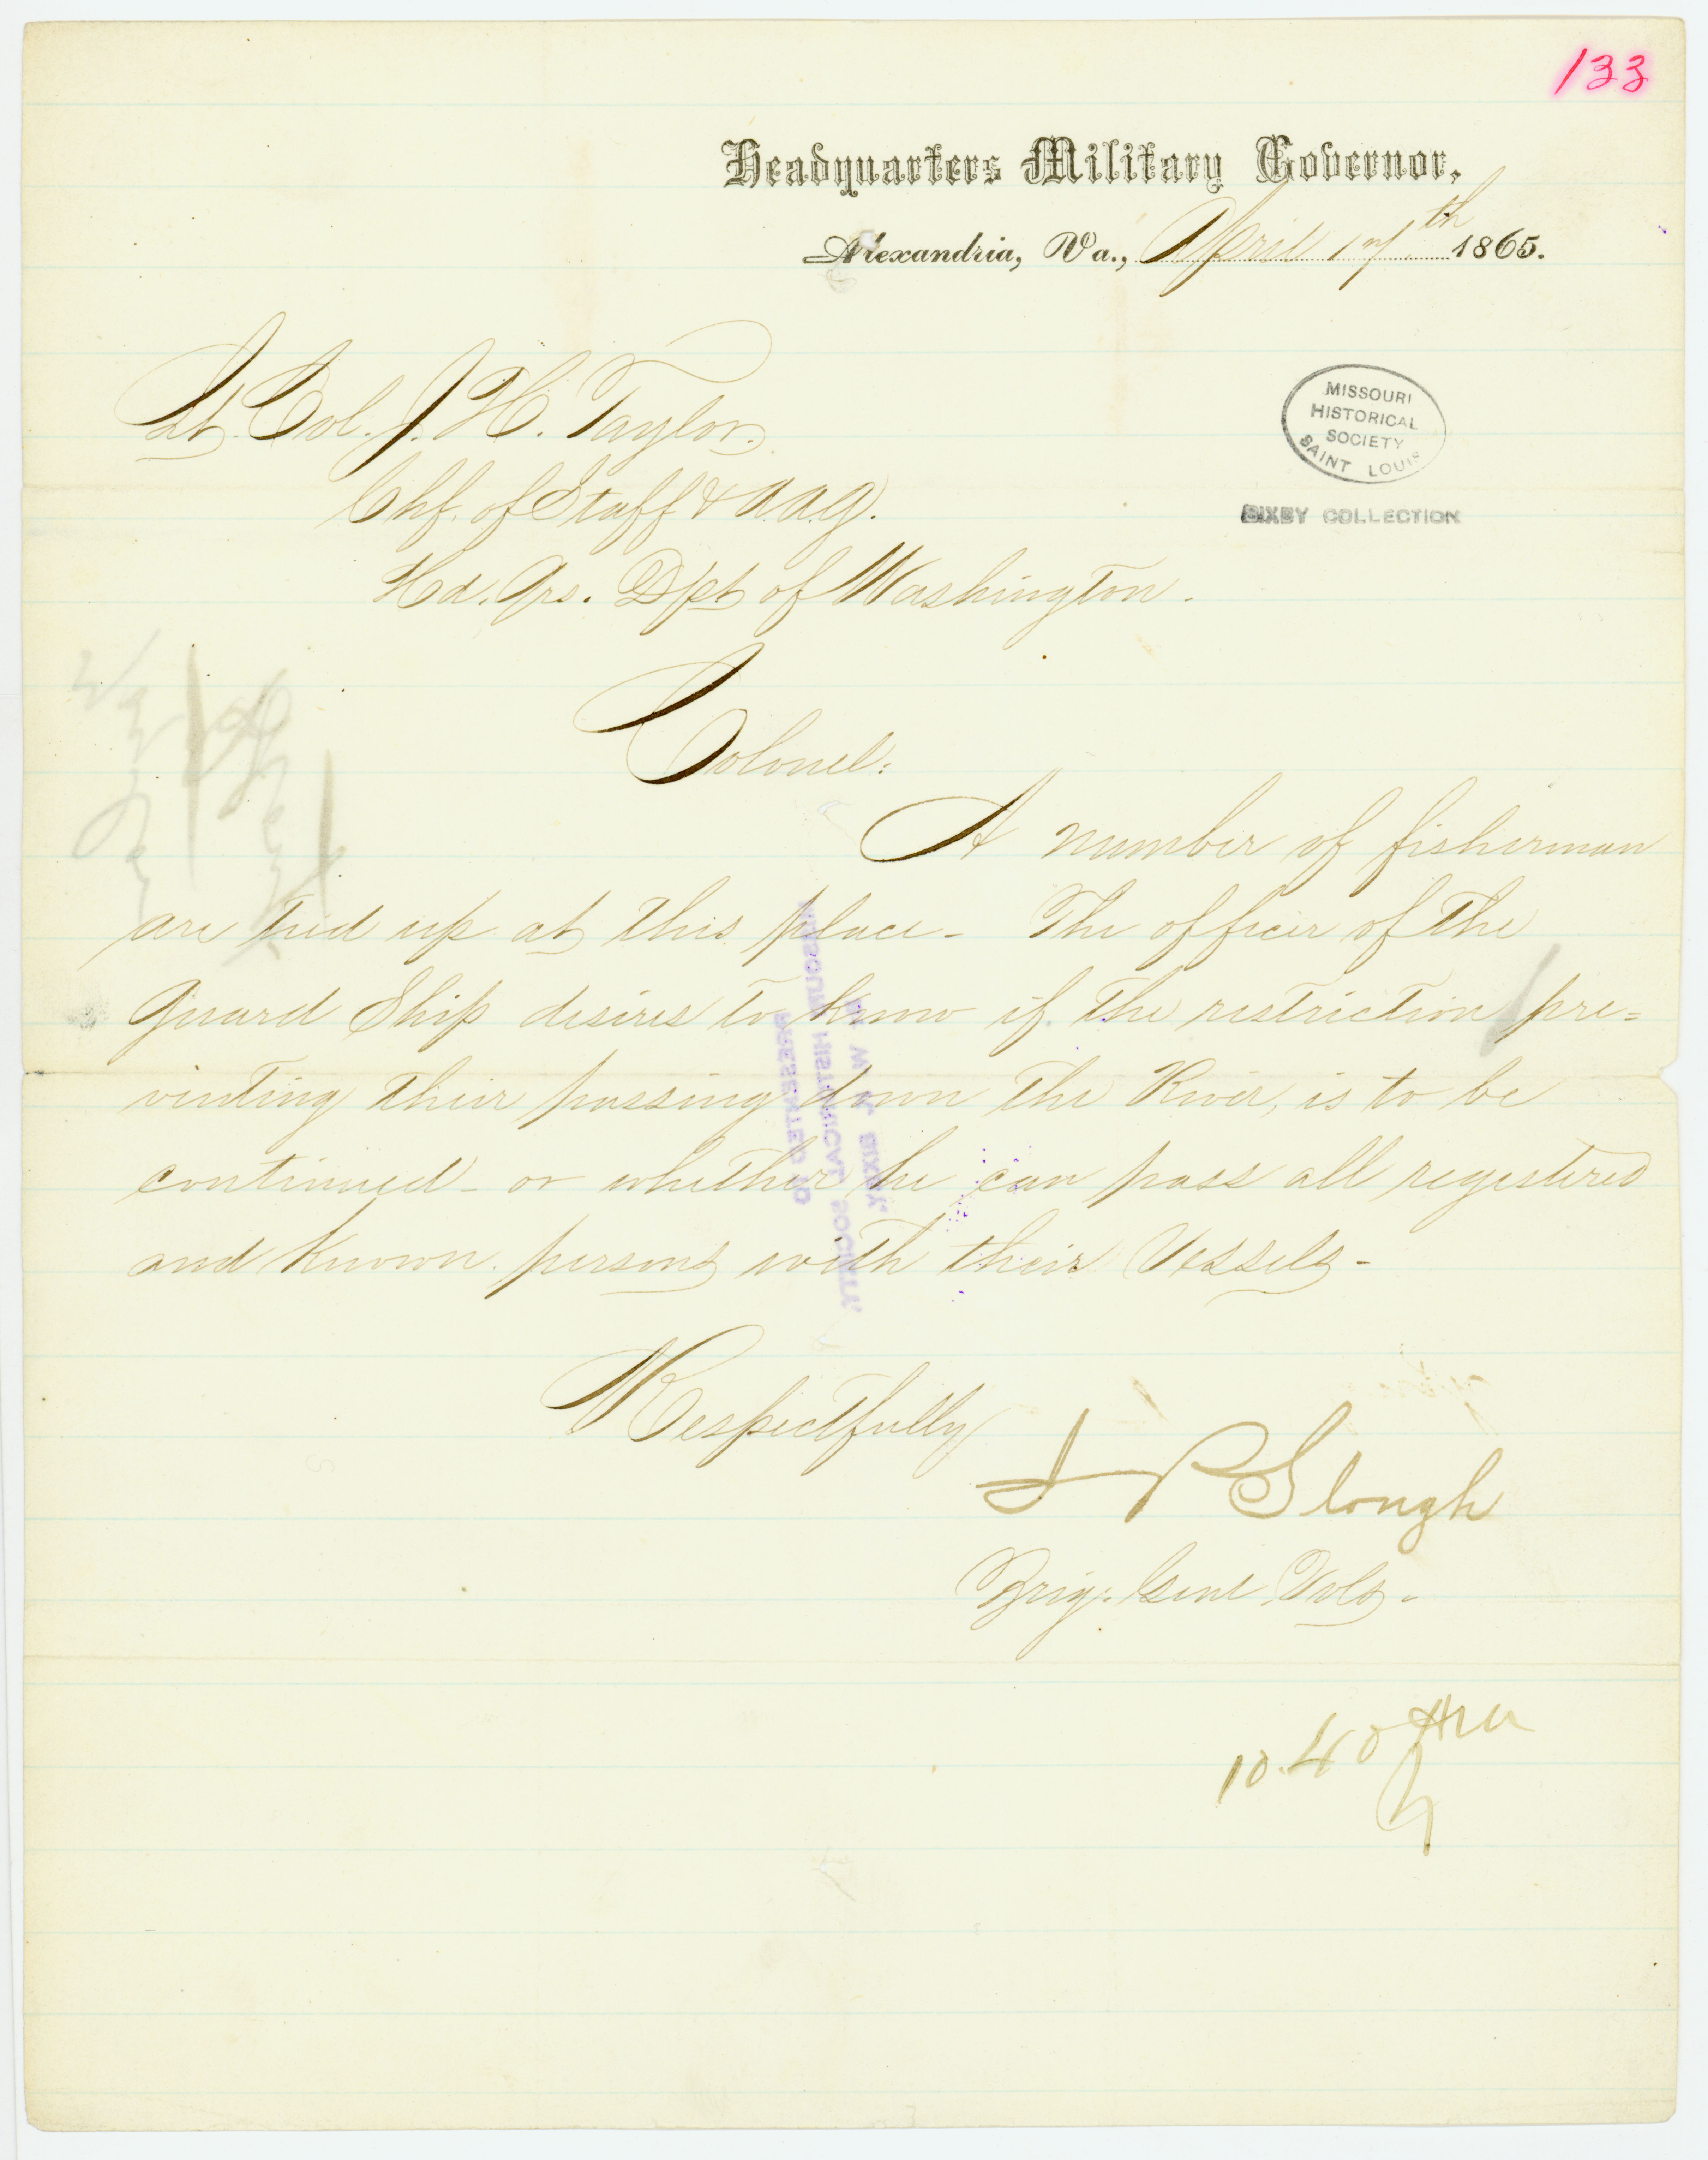 Letter signed J.P. Slough, Brig. Genl. Vols., Headquarters Military Governor, Alexandria, Va., to Lt. Col. J.H. Taylor, Chf. of Staff and A.A.G., Hd. Qrs. Dpt. of Washington, April 17, 1865